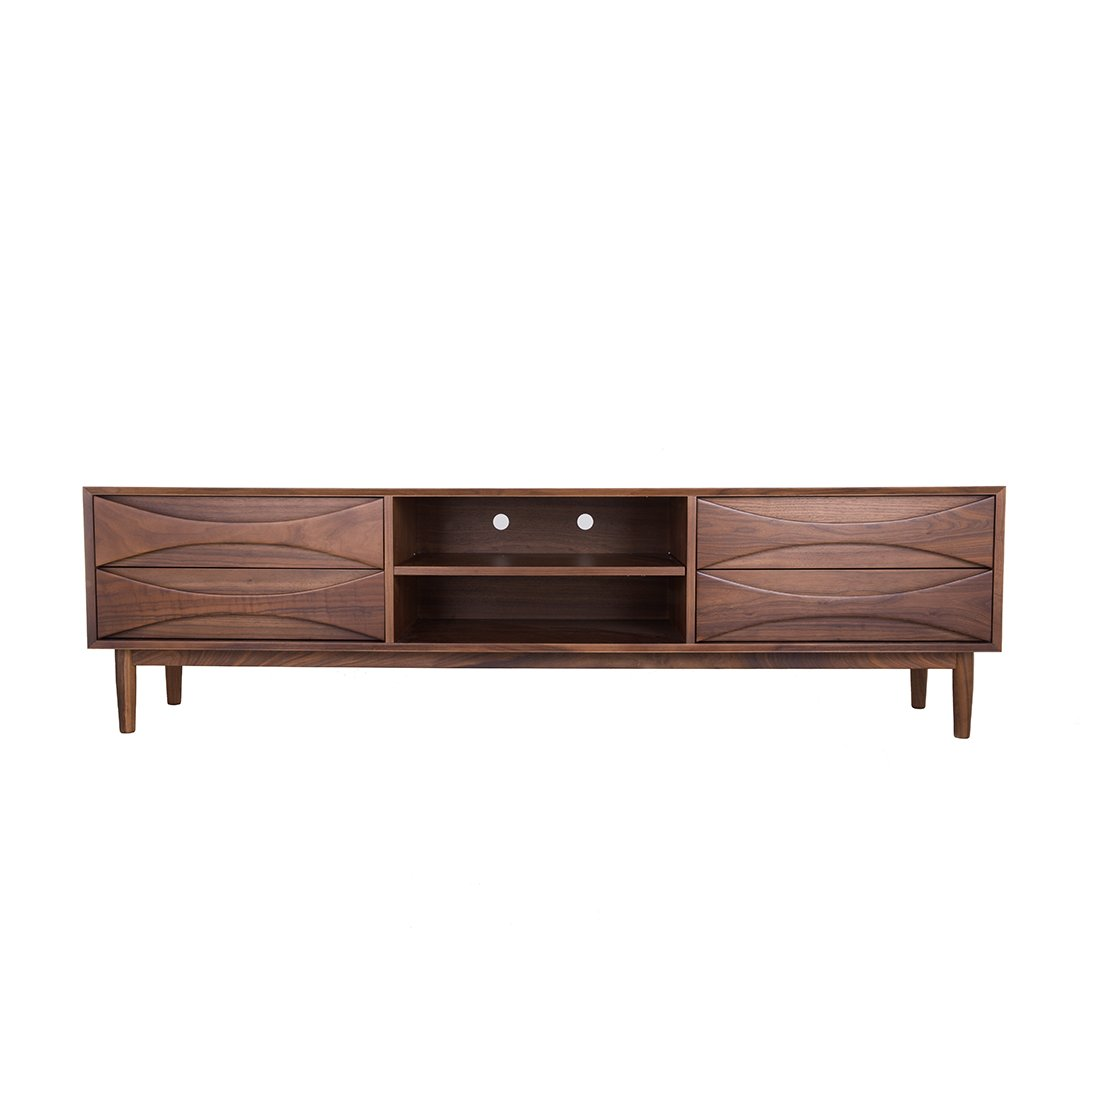 [FES3205WALNUT] Beleven Console